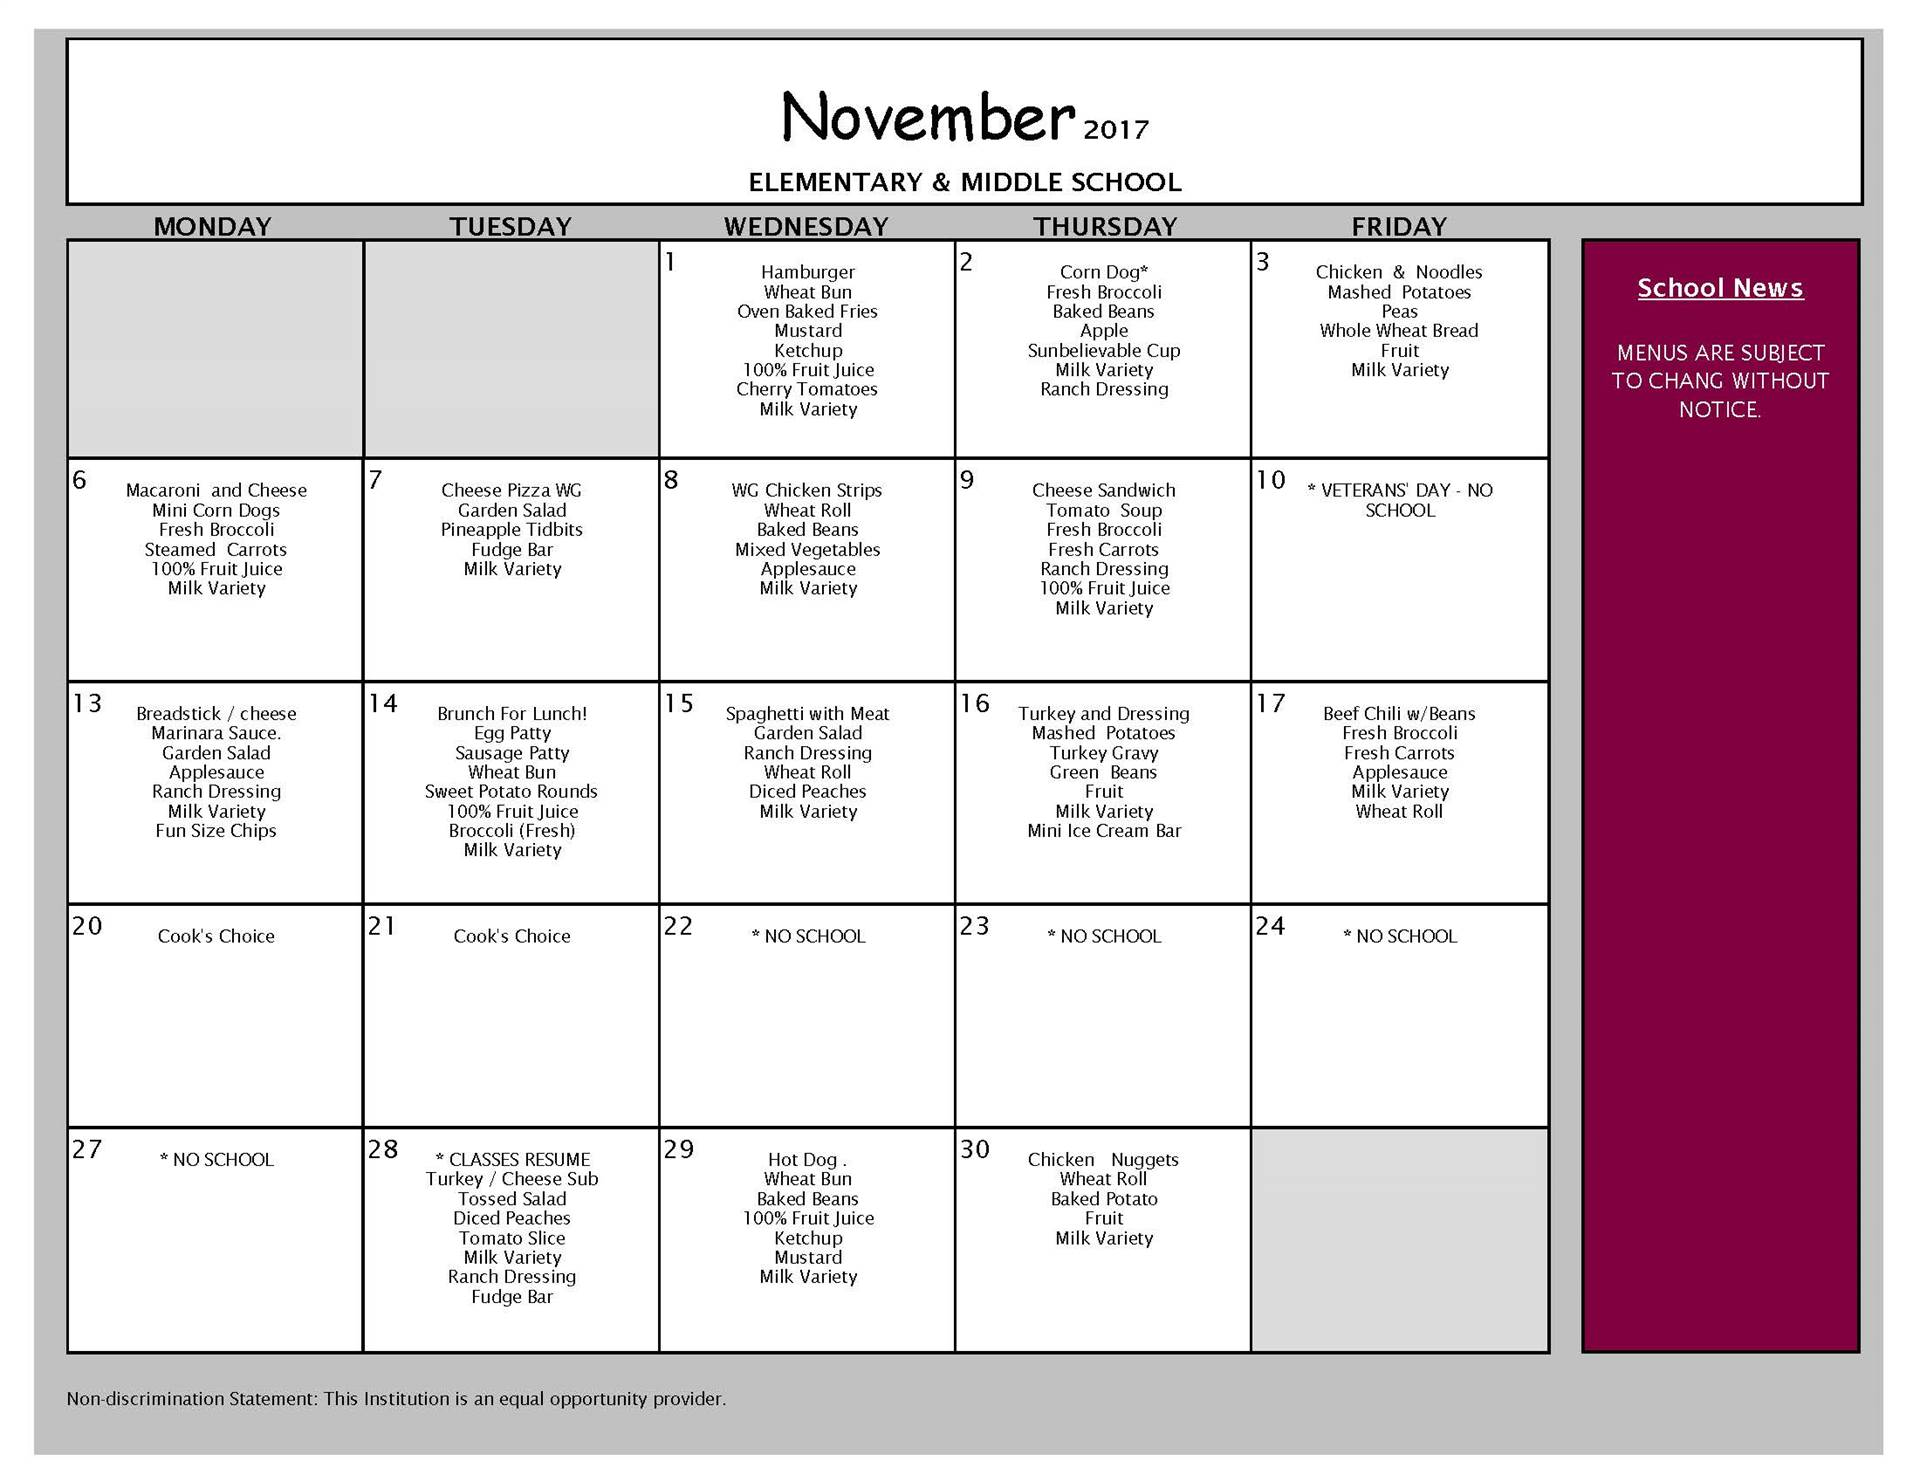 November Lunch - Elementary and Middle School